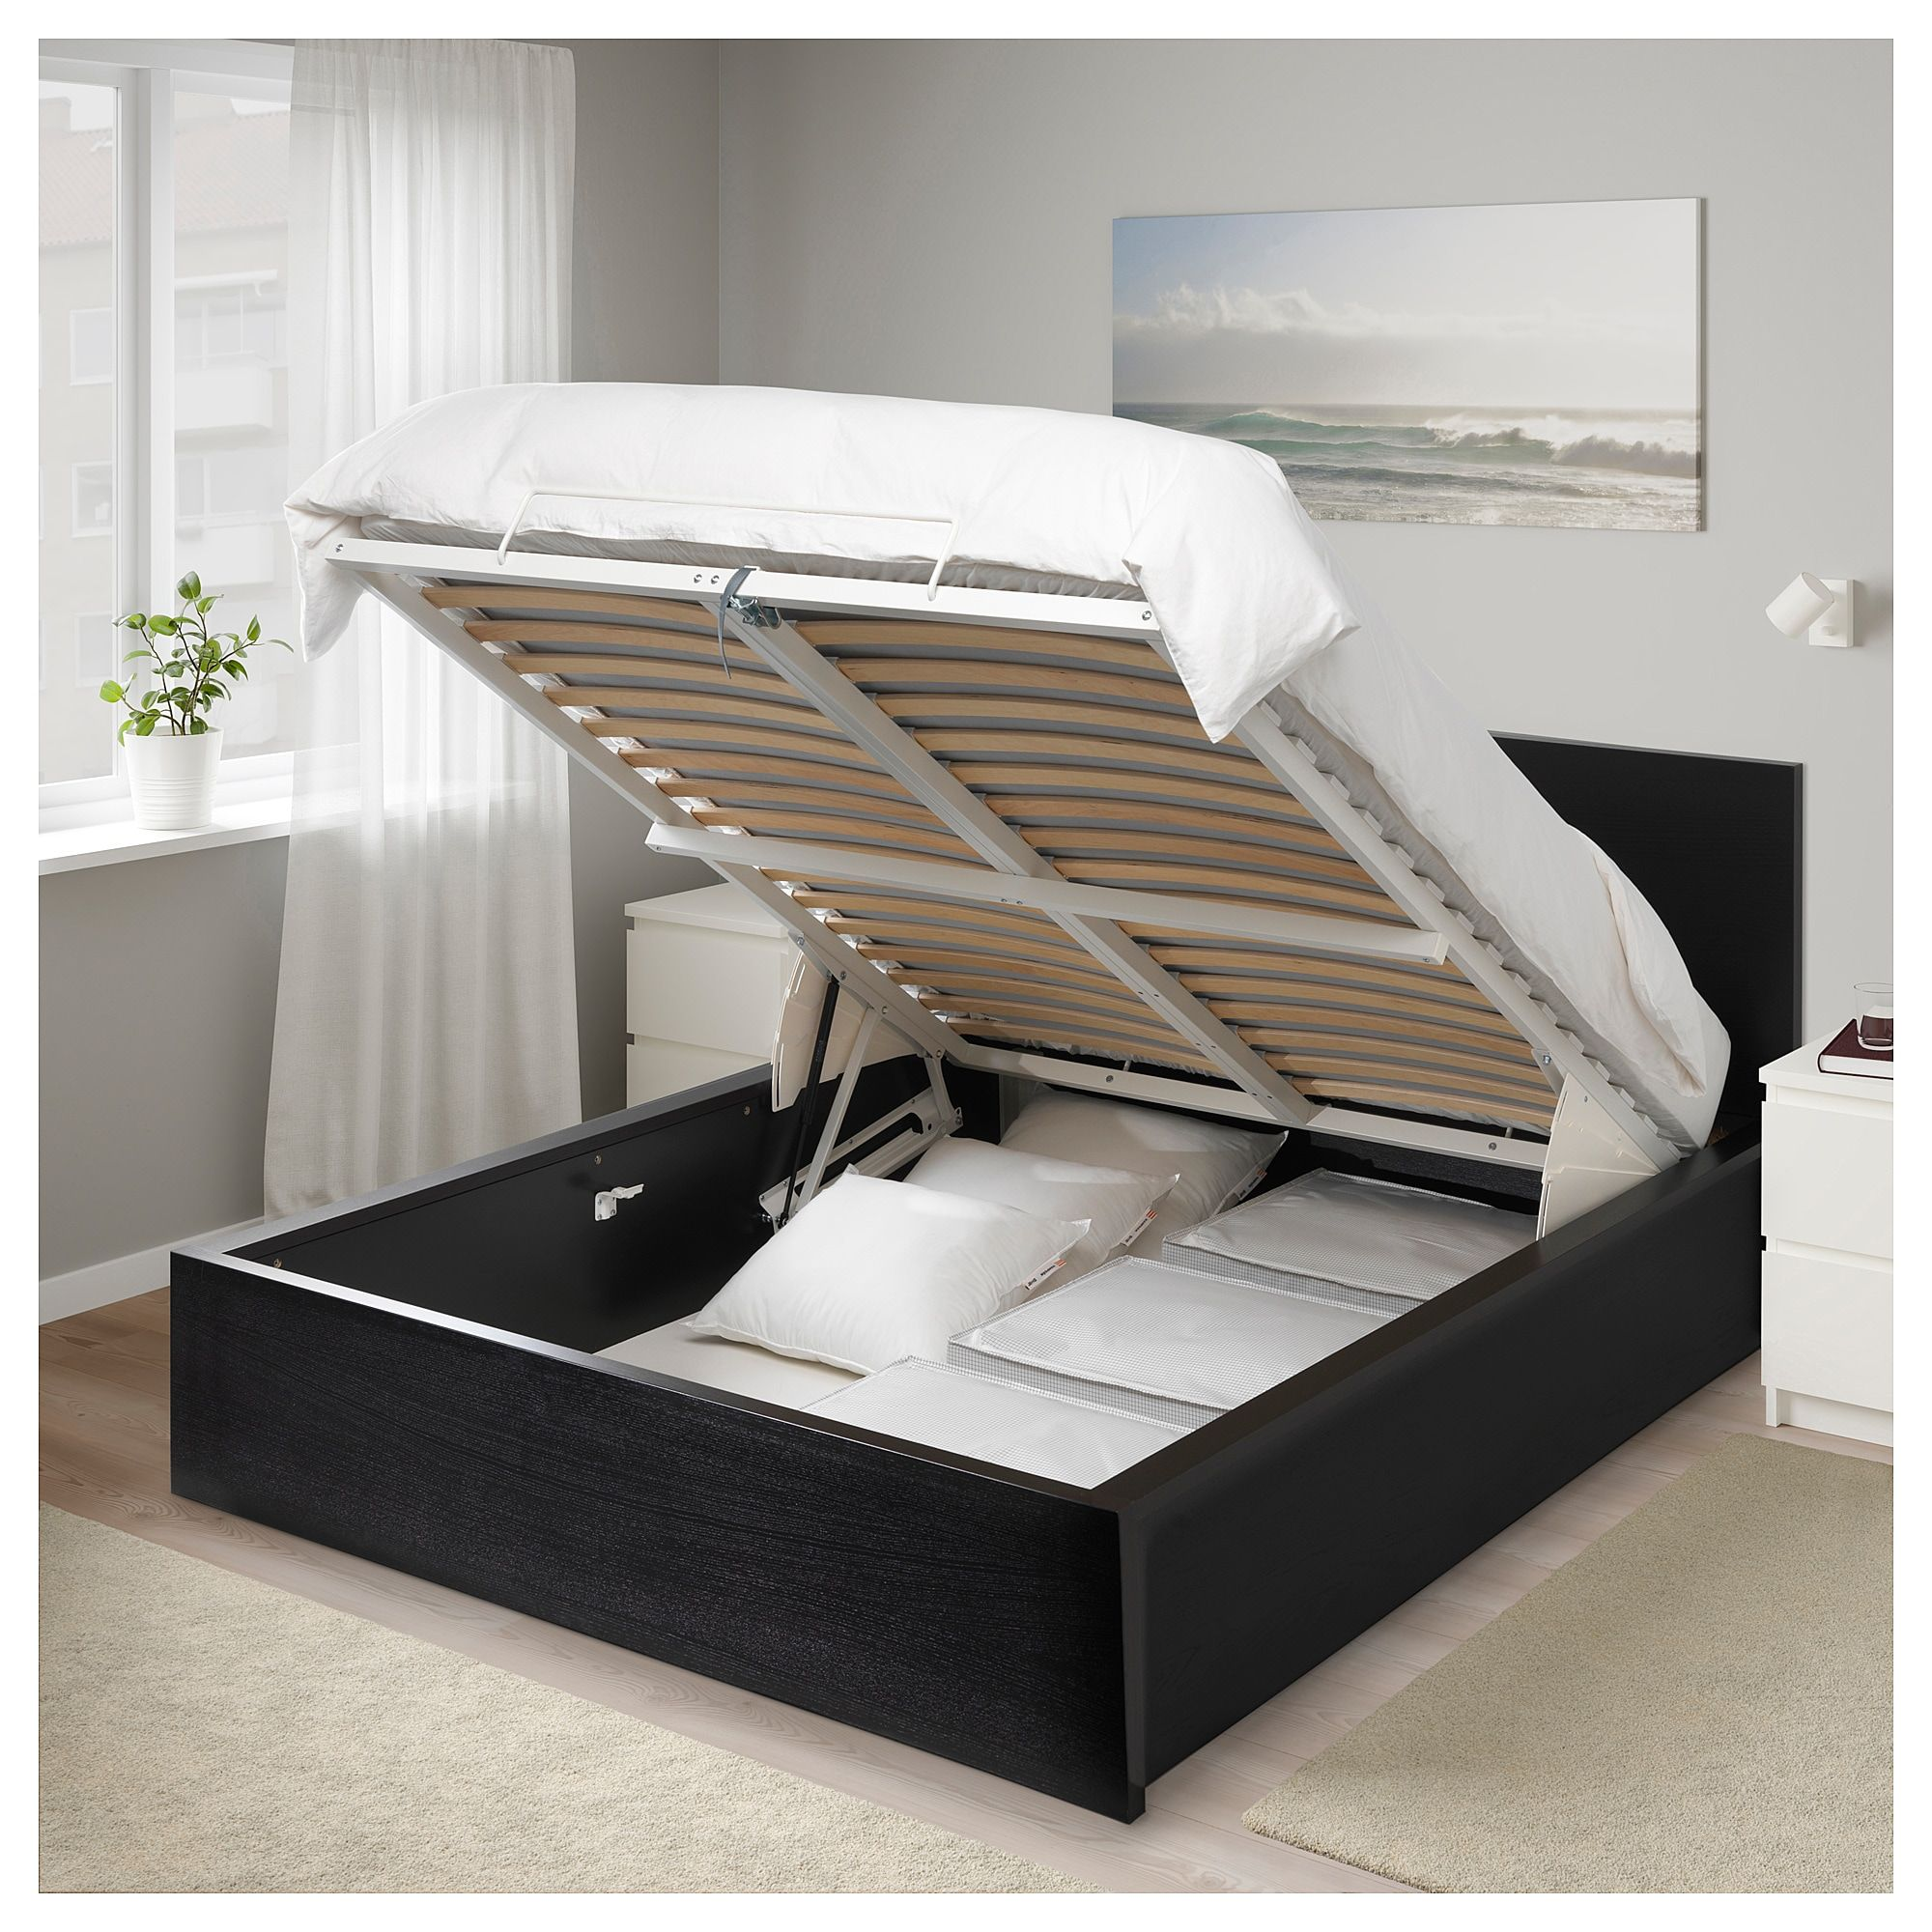 Admirable Storage Bed Black Brown Full Double In 2019 Bed Storage Pdpeps Interior Chair Design Pdpepsorg